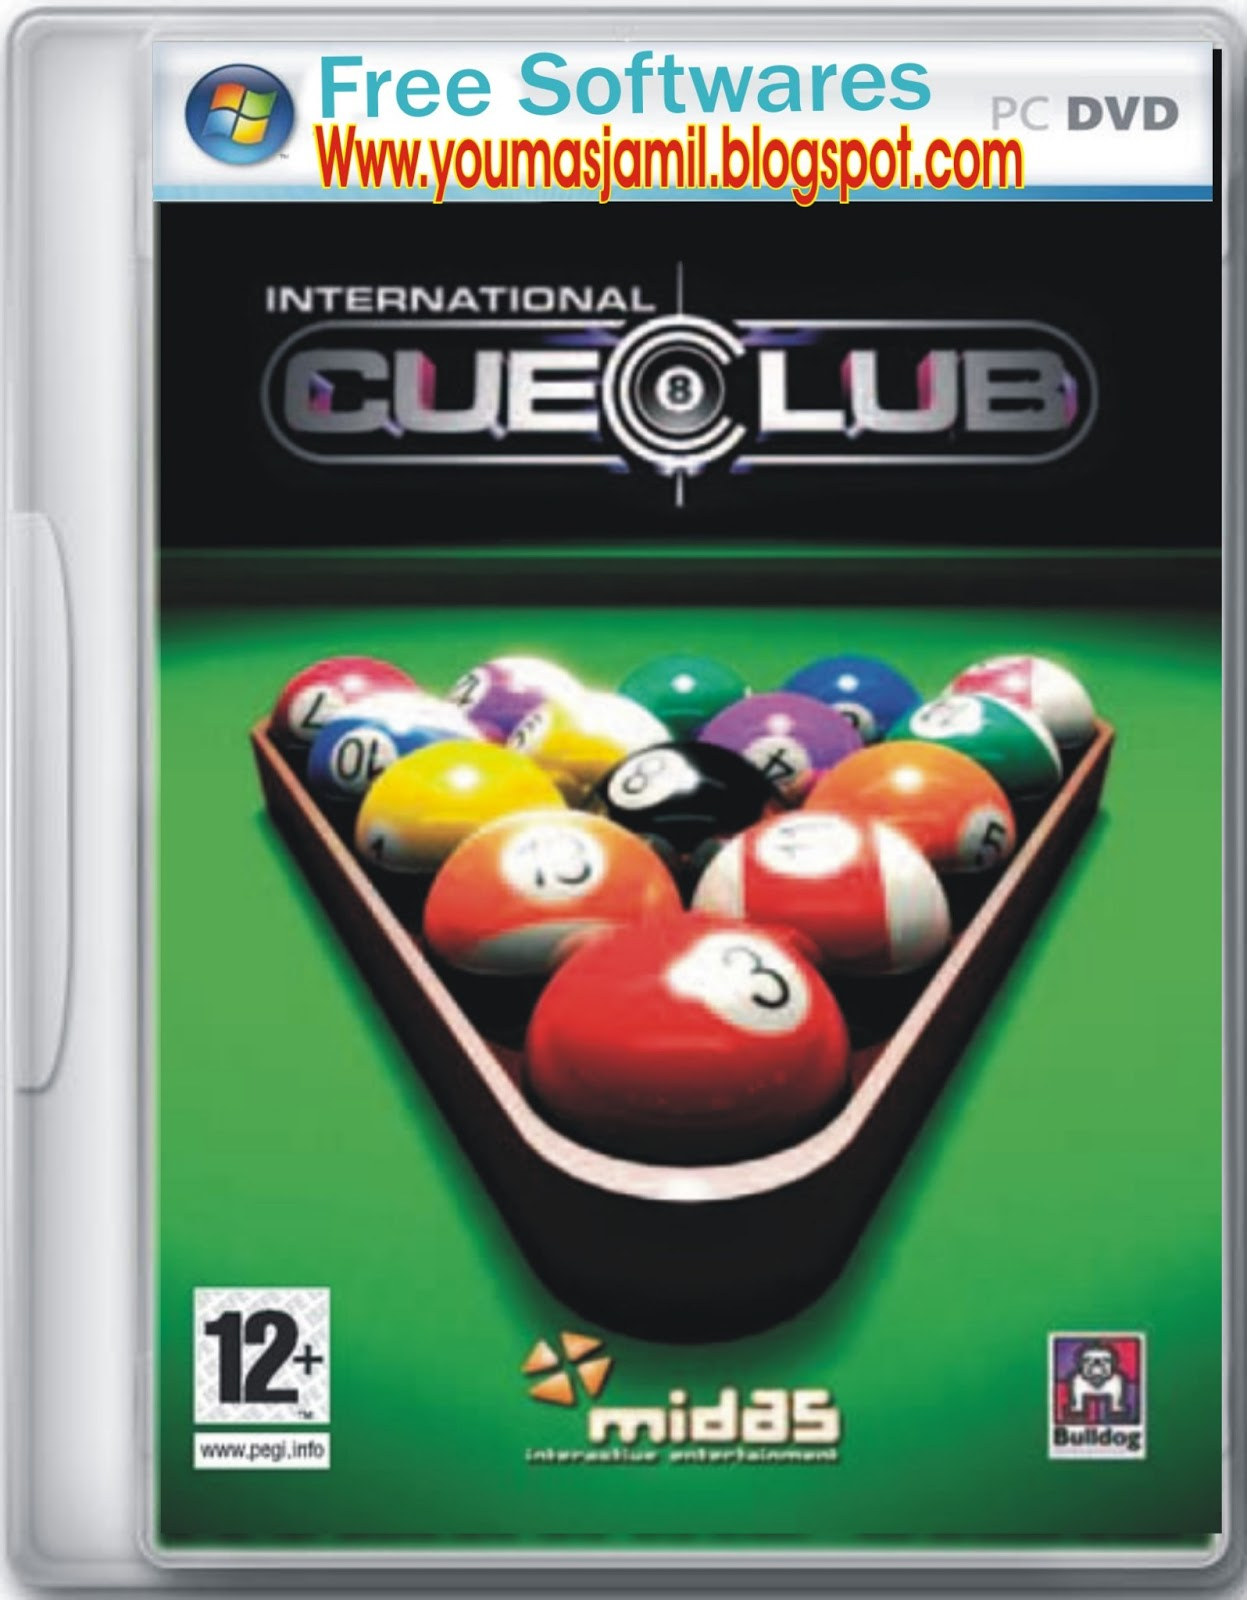 Bubble Snooker - Full Version (PocketPC) - SOFTOASIS